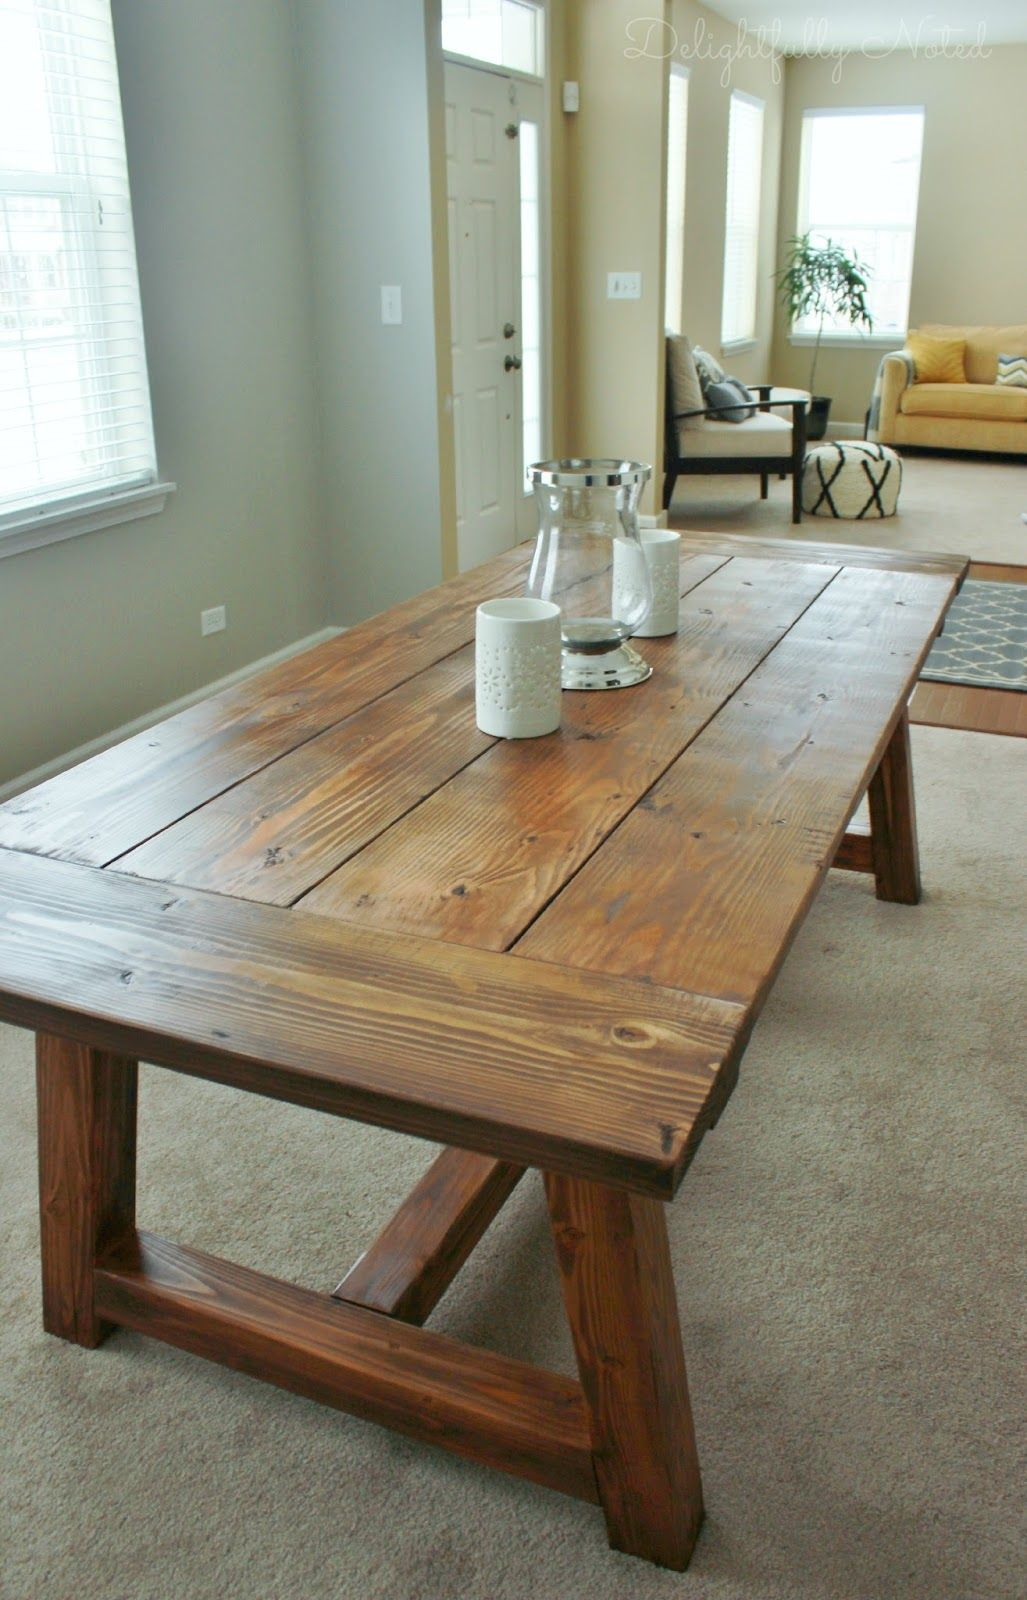 Restoration Hardware Kitchen Table Floor Mat Holy Cannoli We Built A Farmhouse Dining Room